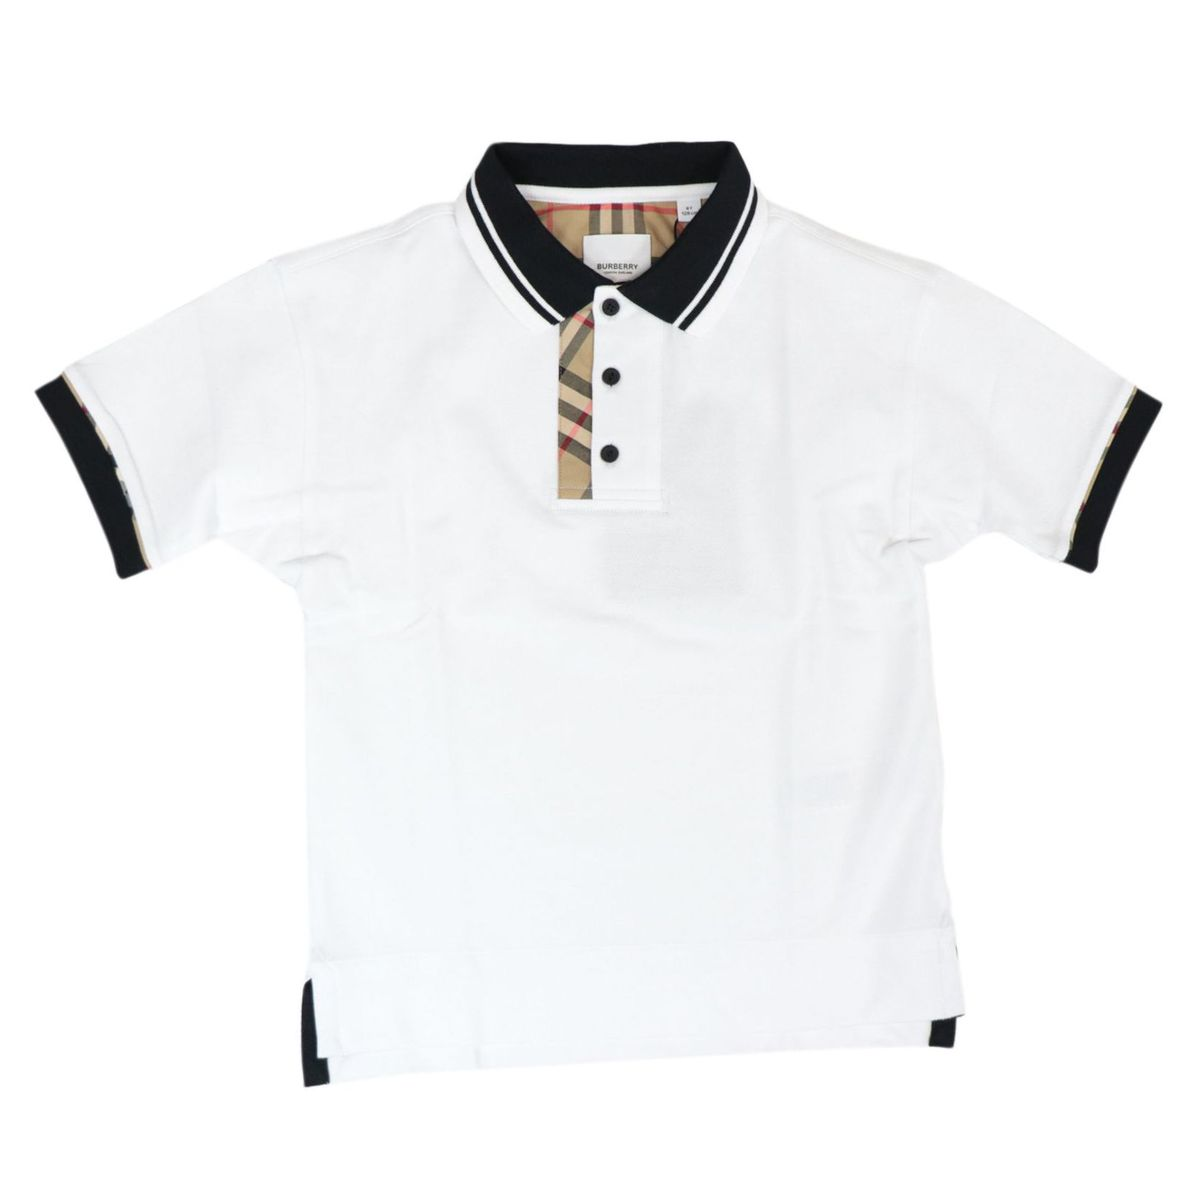 Archie polo shirt in cotton pique with contrasting profiles and check fabric details White Burberry